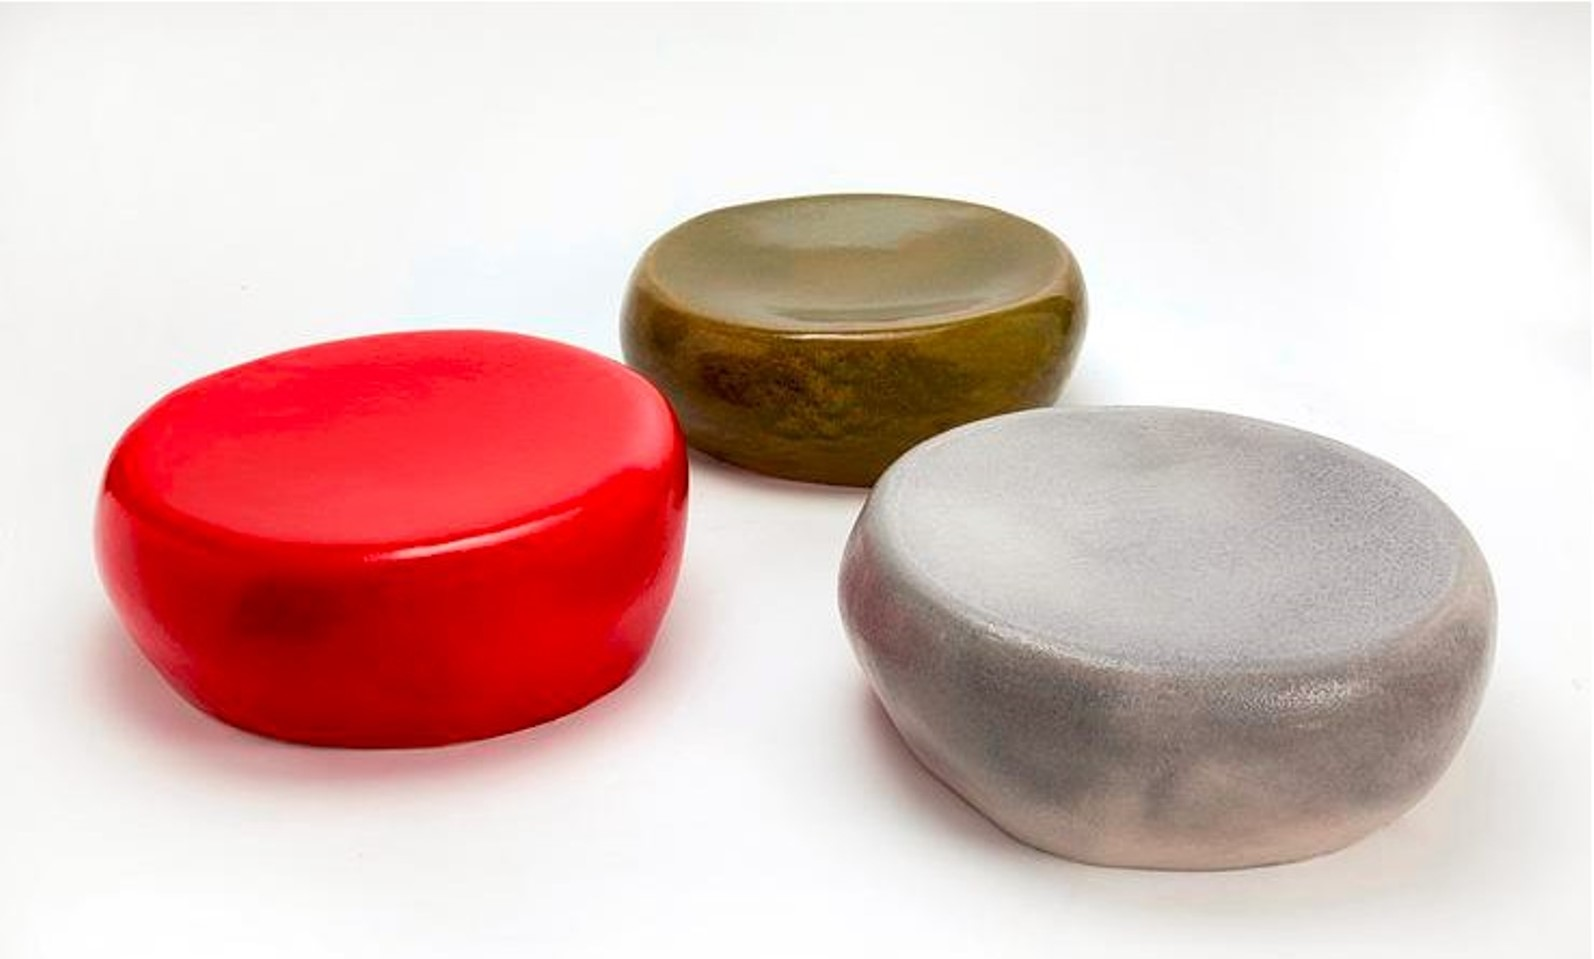 Ceramic cocktail tables by Ifat Shterenberg. Photo via ifatshterenberg.com